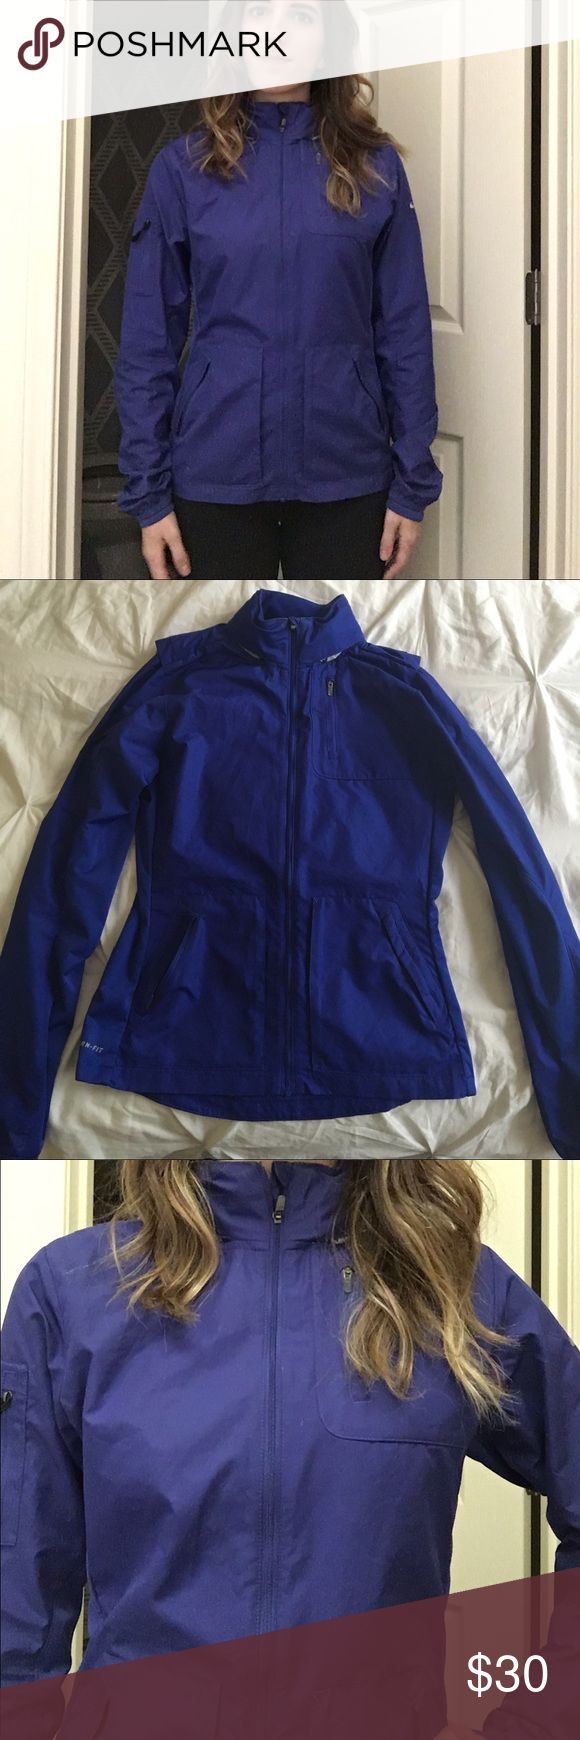 """Nike waterproof jacket Royal blue full zip Nike running jacket """"storm fit"""". It has a hood that can be hidden in the collar of the jacket. Nike Other"""